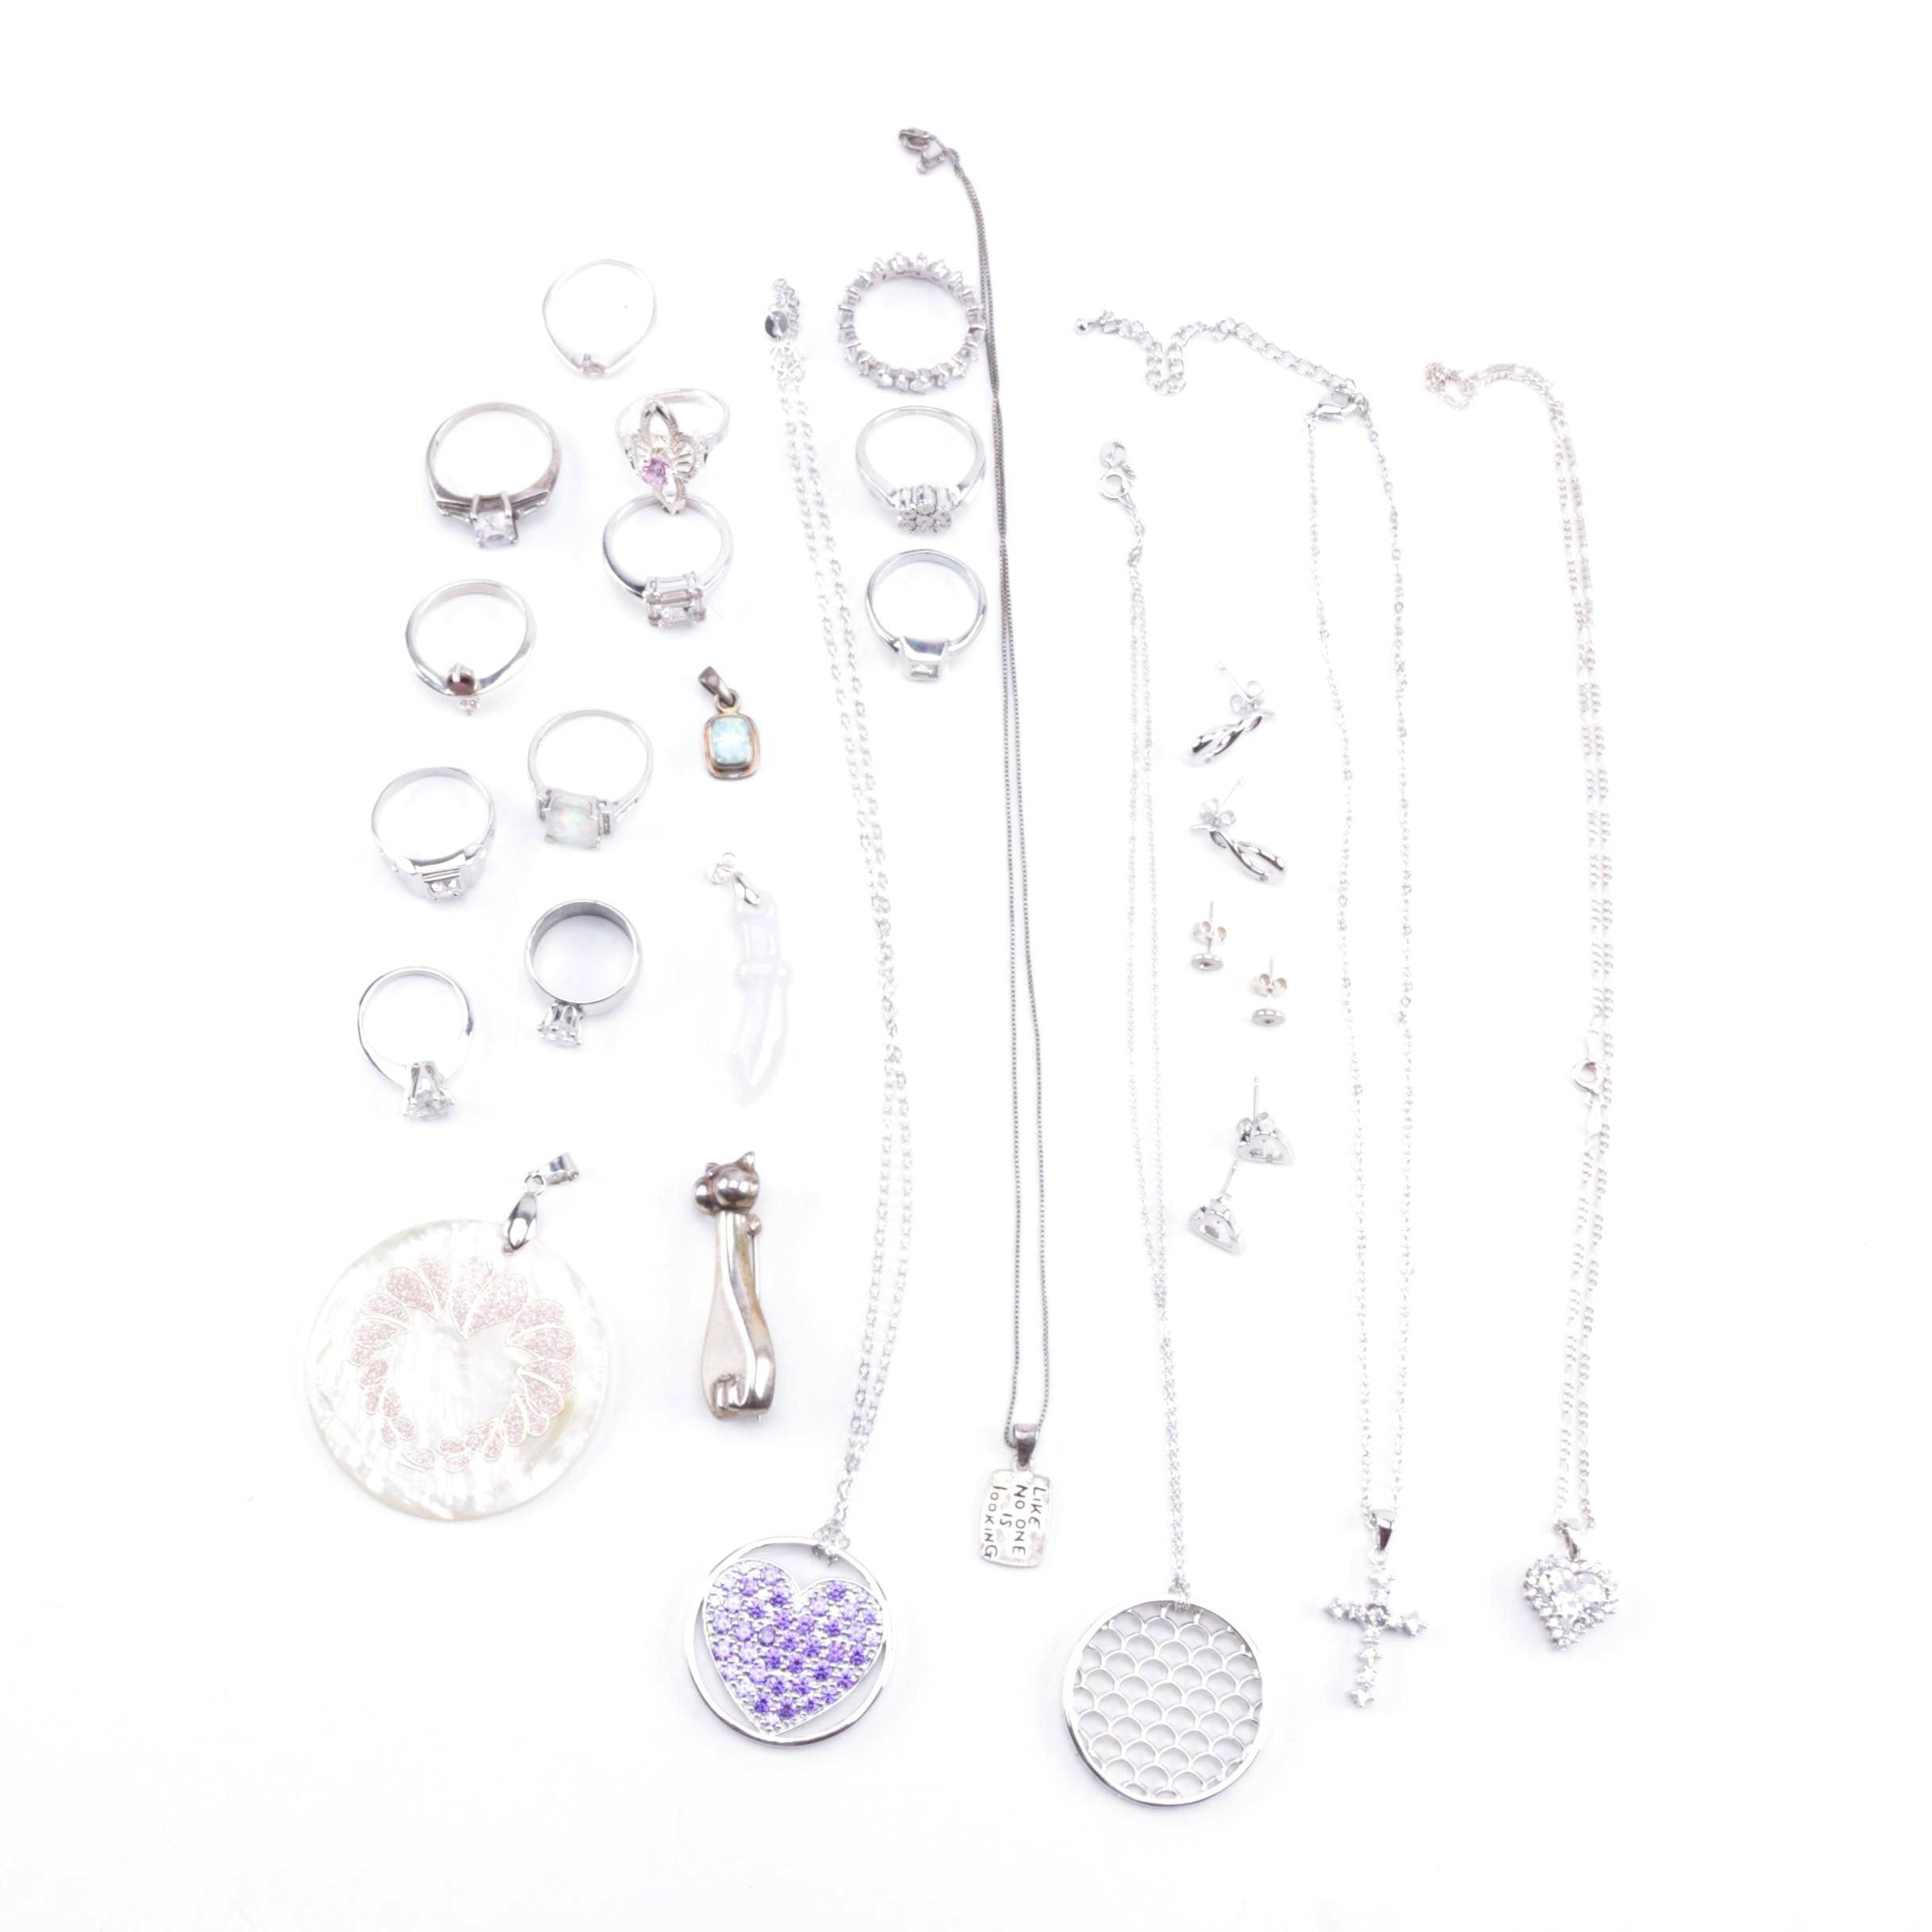 Assortment of Sterling Silver Jewelry Including Diamond